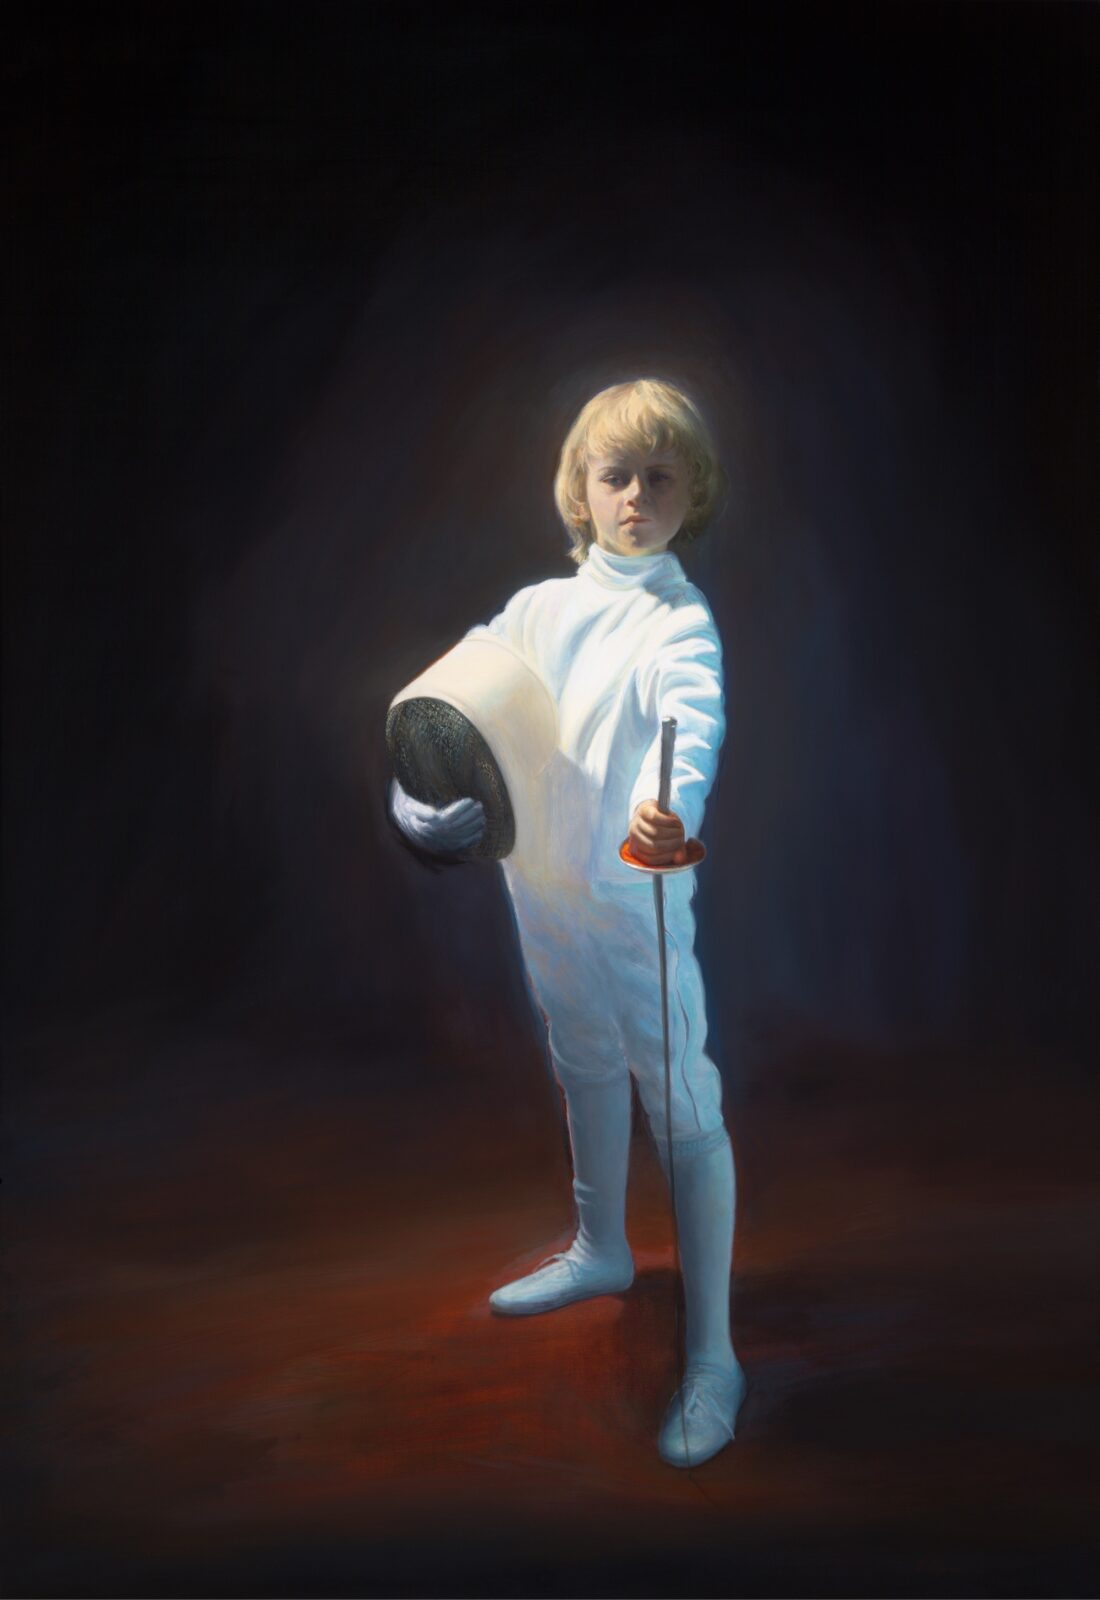 Paul Chizik - Boy in White. Oil on Linen 84 x 58 inches